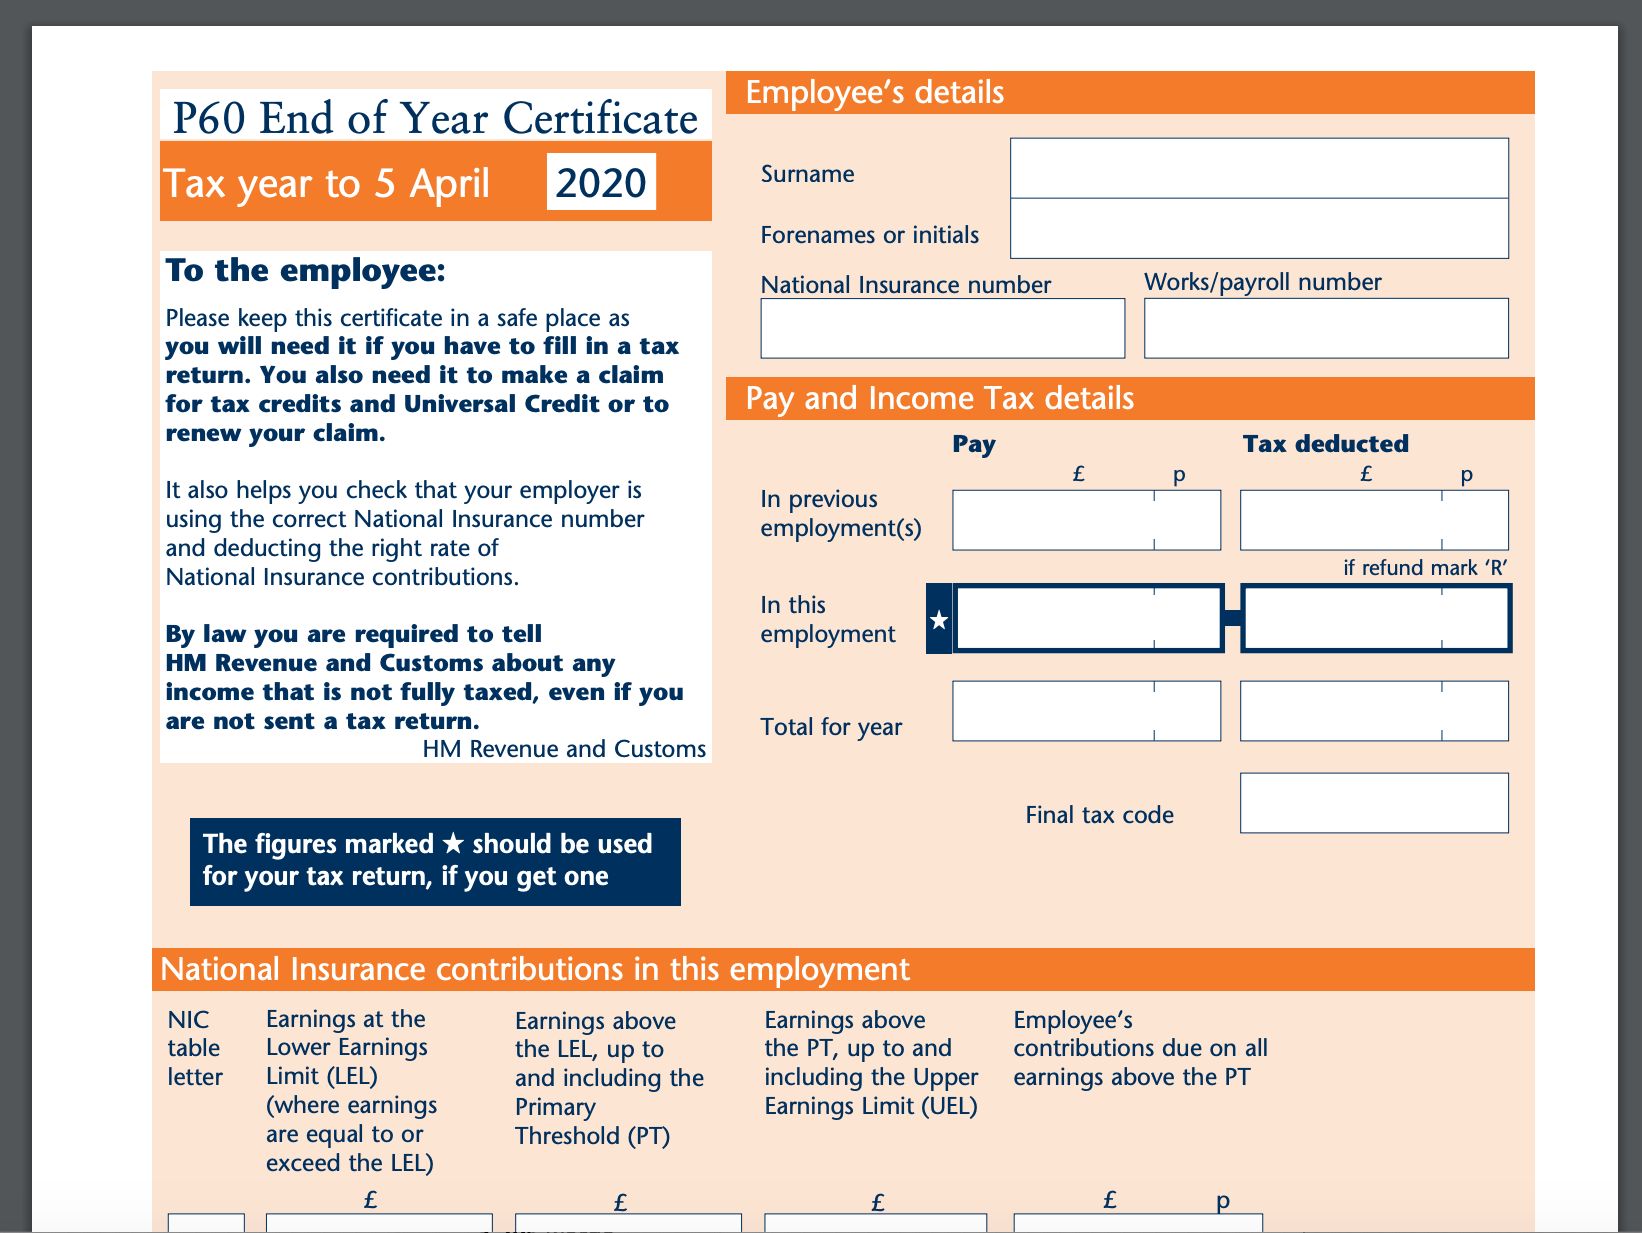 P60 form from HMRC